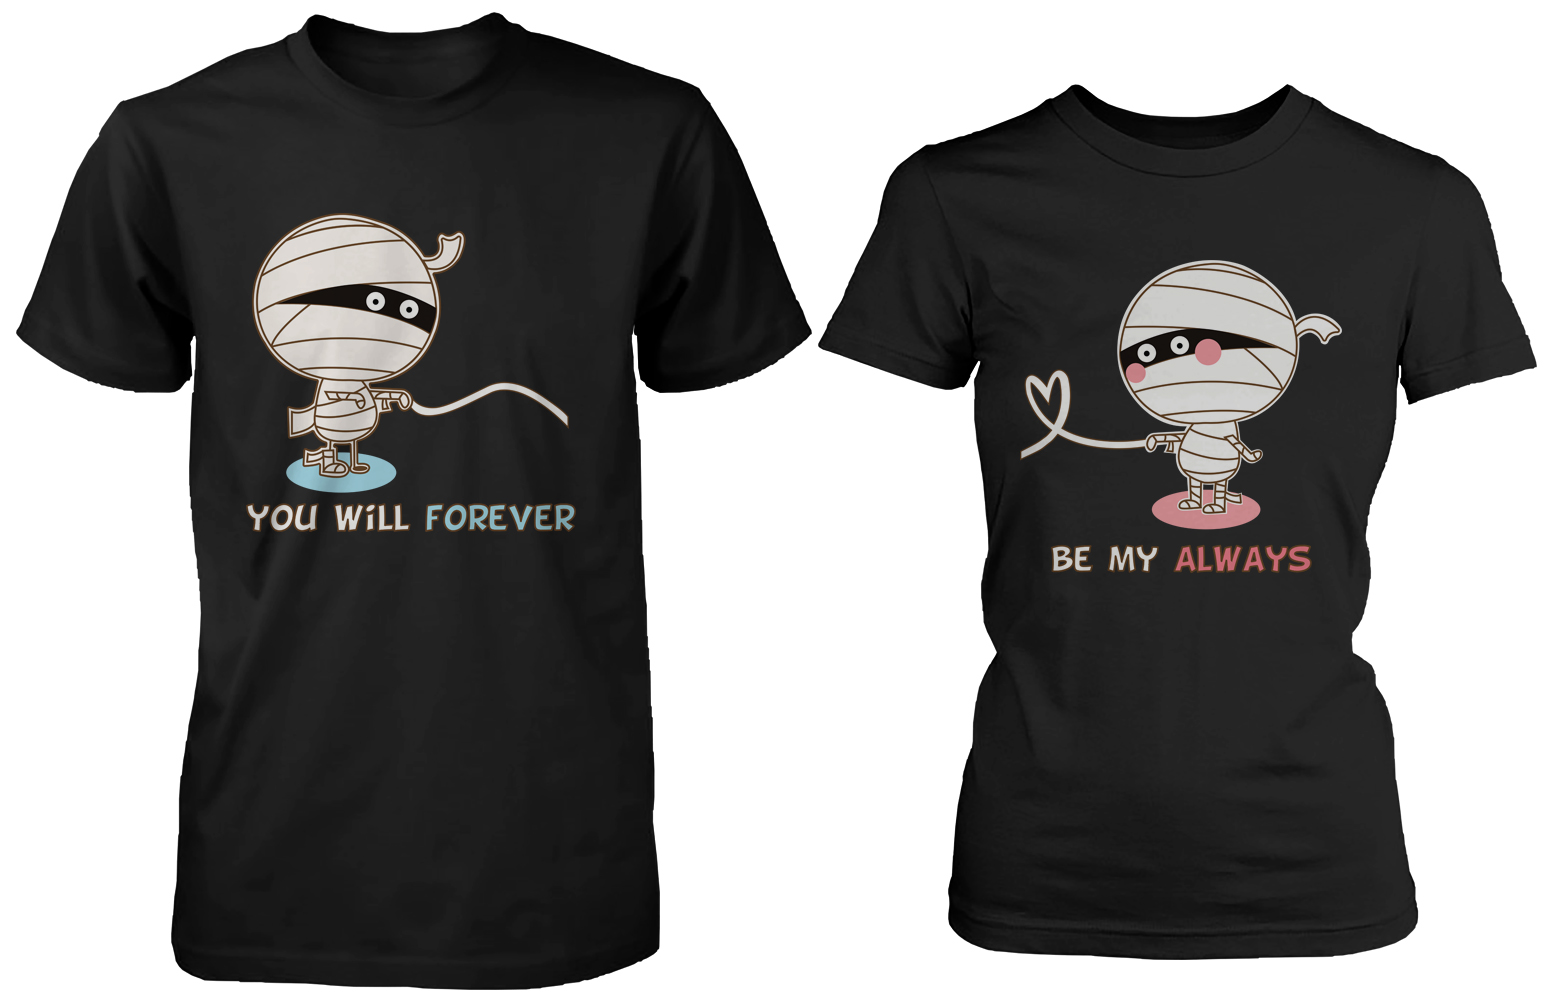 44e84f6330 365 Printing - Halloween Couple Shirts - Mummy Shirts for Horror Night -  Walmart.com